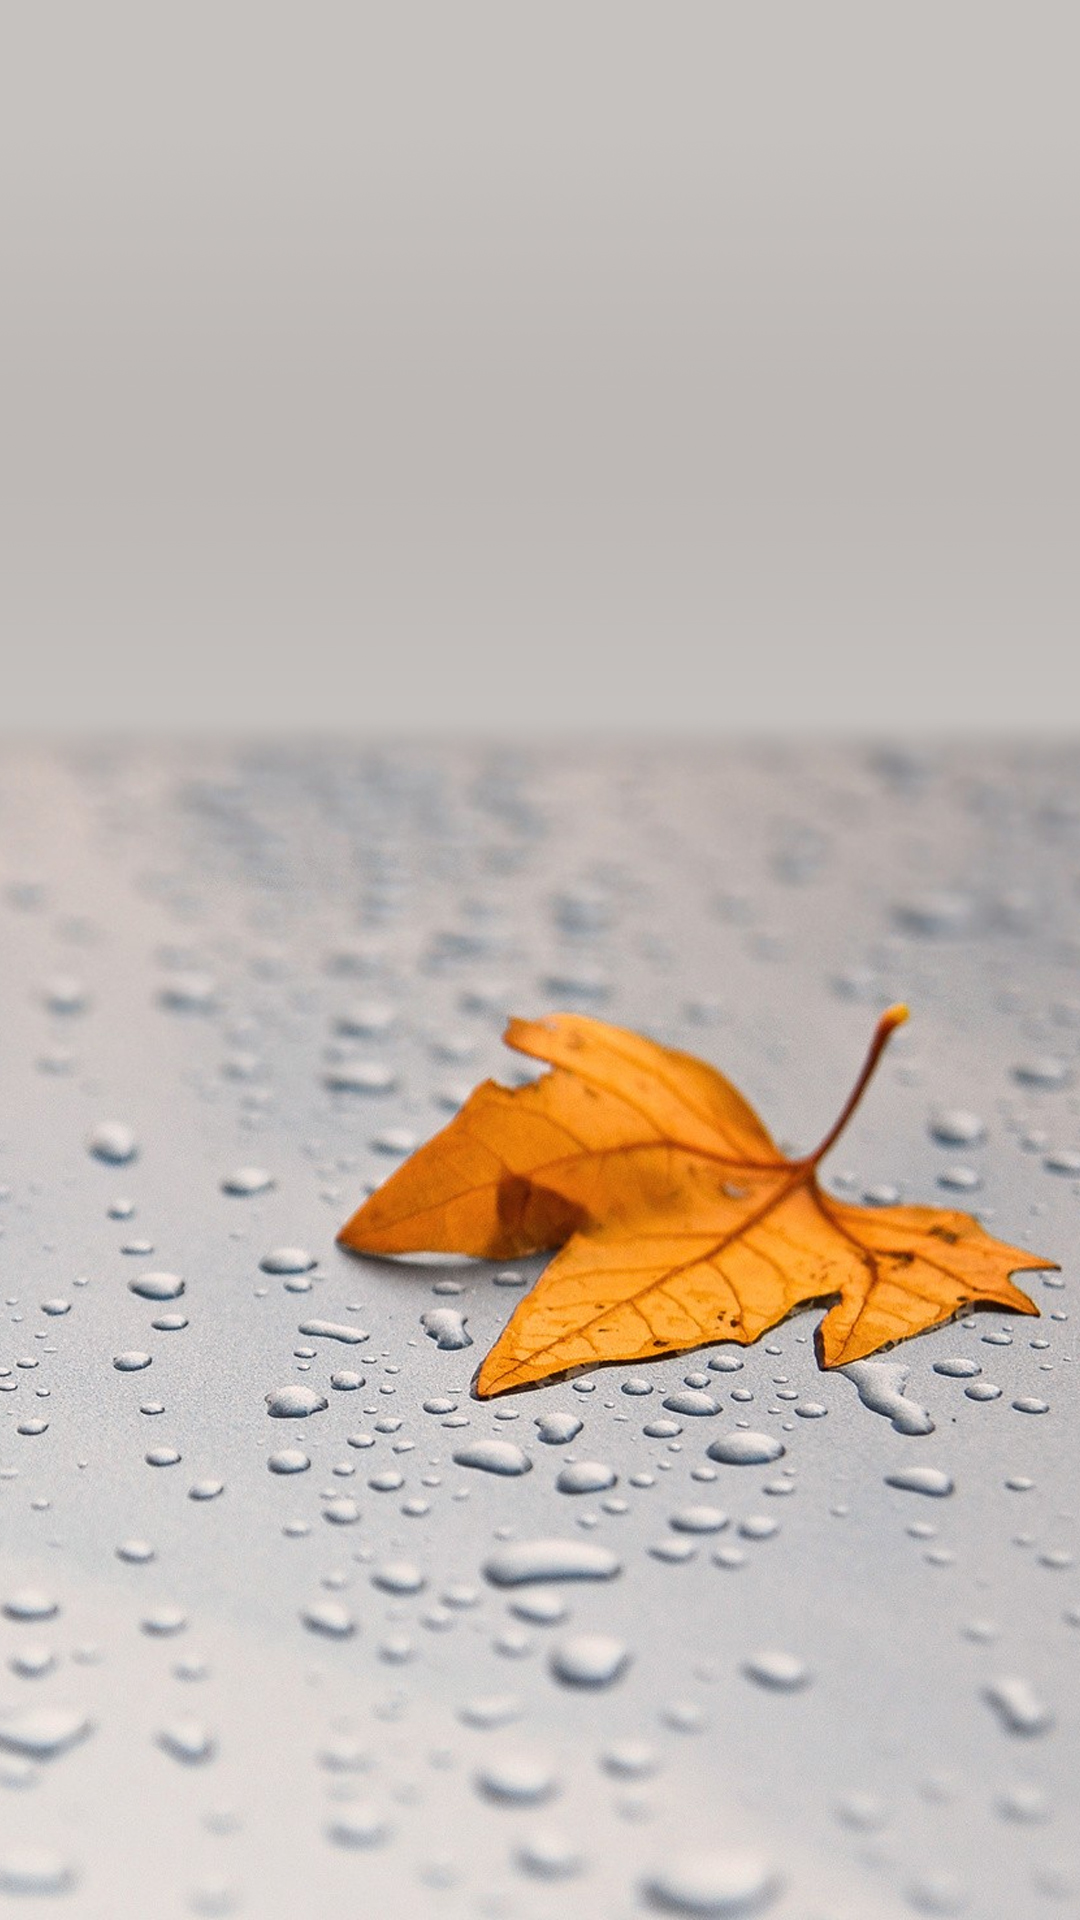 Wet Leaf Smartphone HD Wallpapers